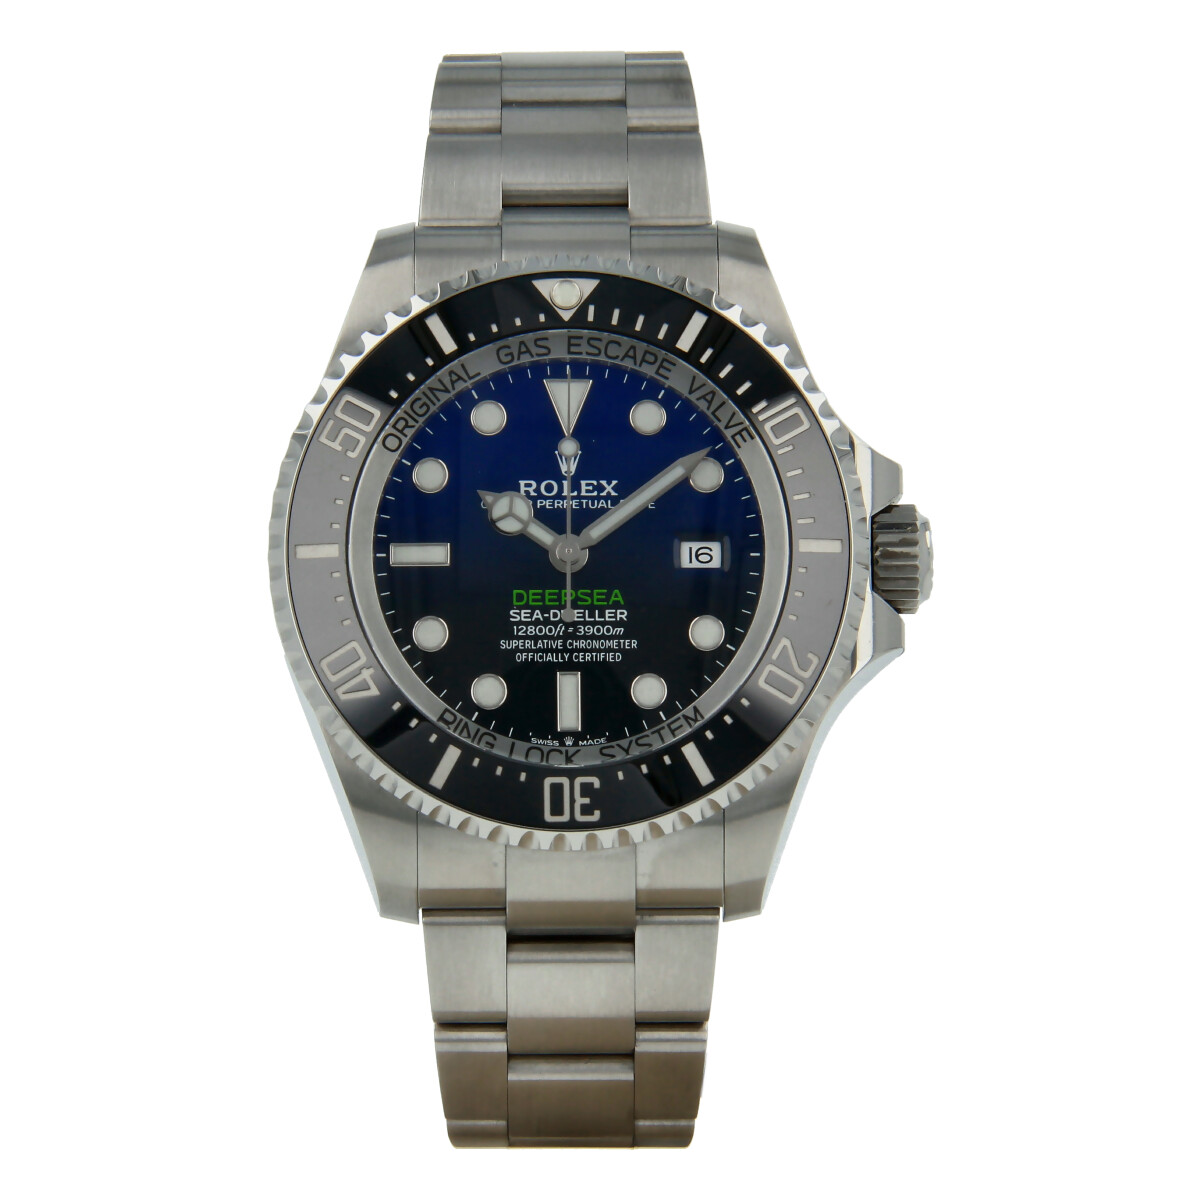 Rolex Sea-Dweller Deepsea 126660